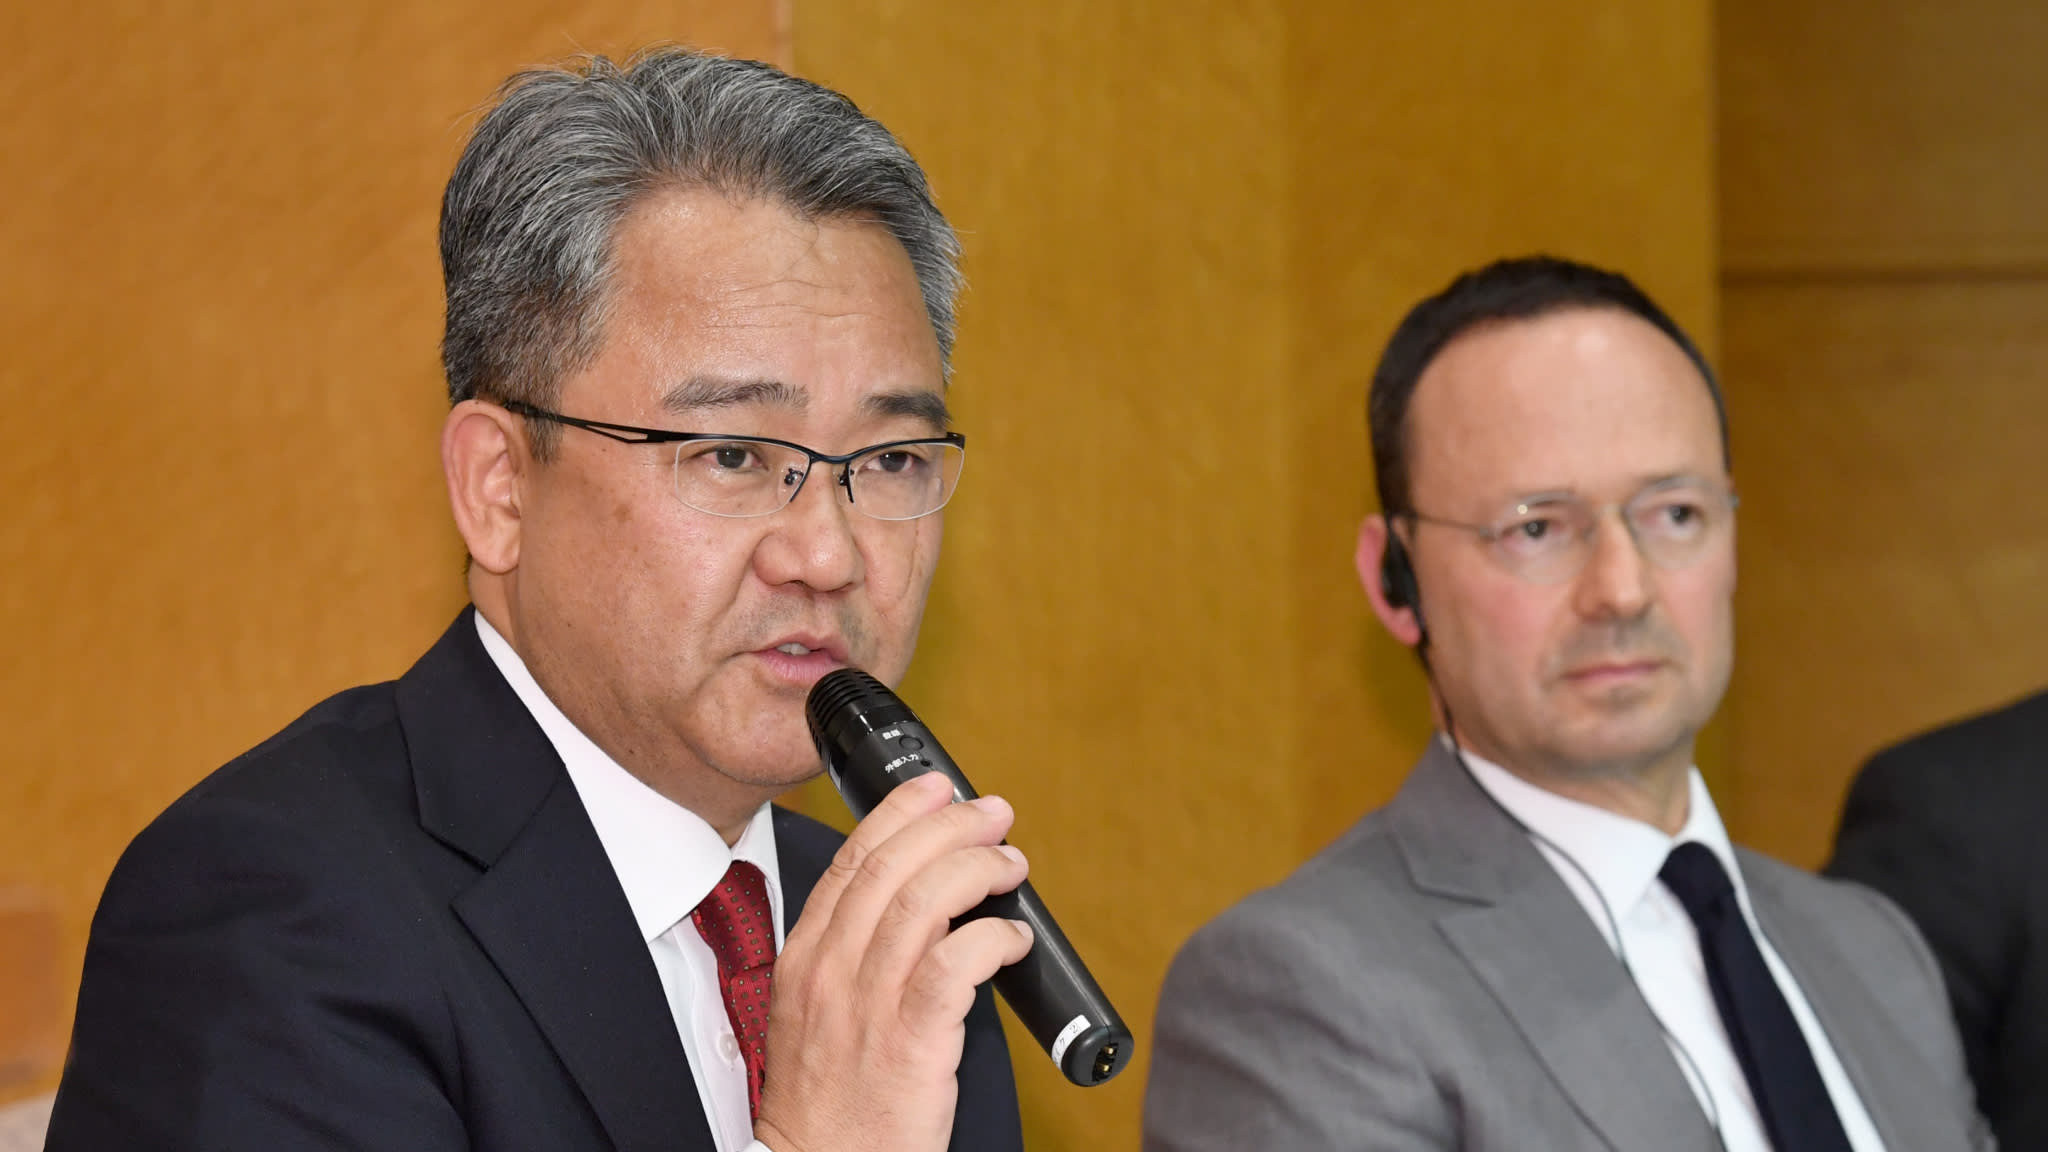 Pioneer President Koichi Moriya, left, and Baring Private Equity Asia CEO Jean Eric Salata speak to reporters in Tokyo. (Photo by Karina Noka)